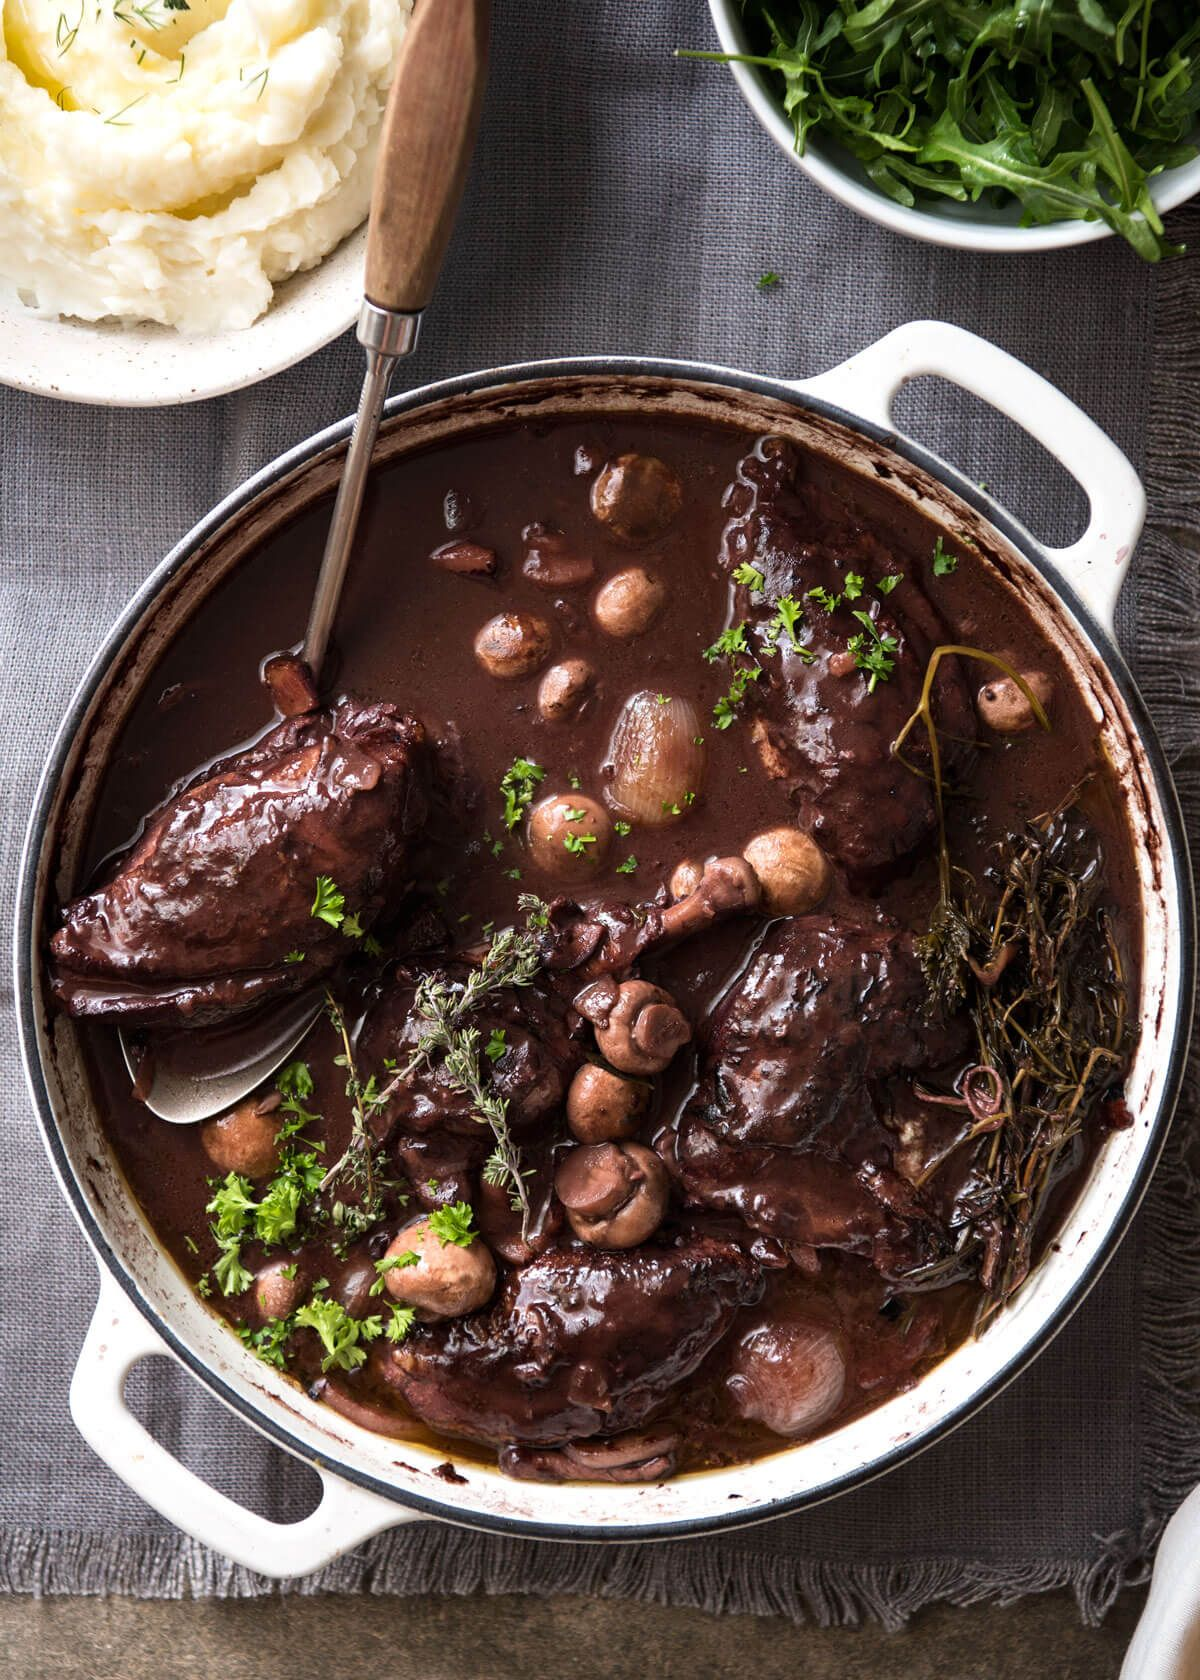 Coq au vin recipe coq au vin red wines and wine sauce a traditional coq au vin recipe with very tender chicken in a rich red wine forumfinder Gallery